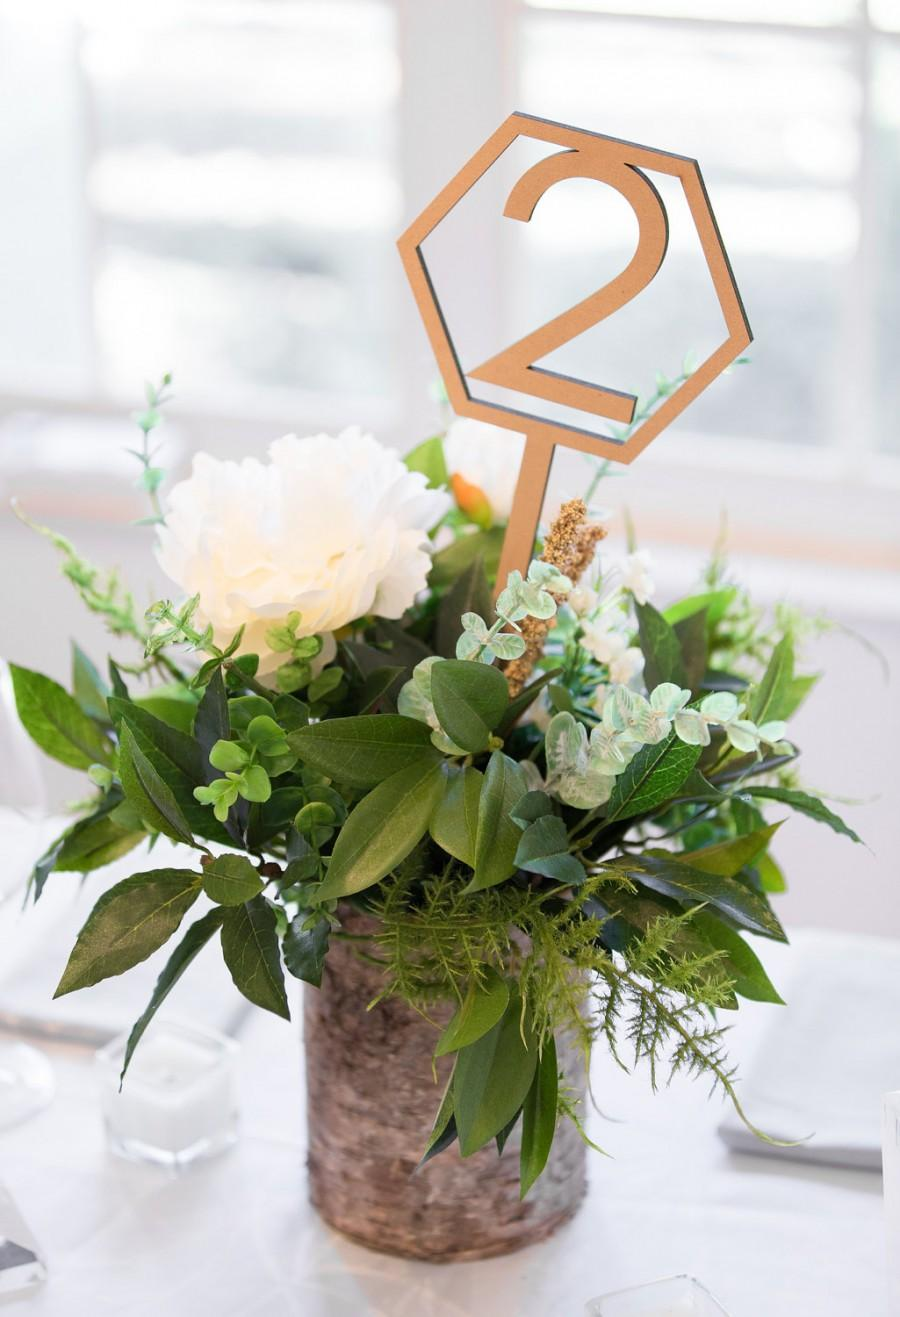 Hochzeit - Hexagon Table Number Signs Wedding Centerpiece Wood Laser Cutout Geometric Wedding Table Numbers Decor Standing Numbers (Item - GST200)